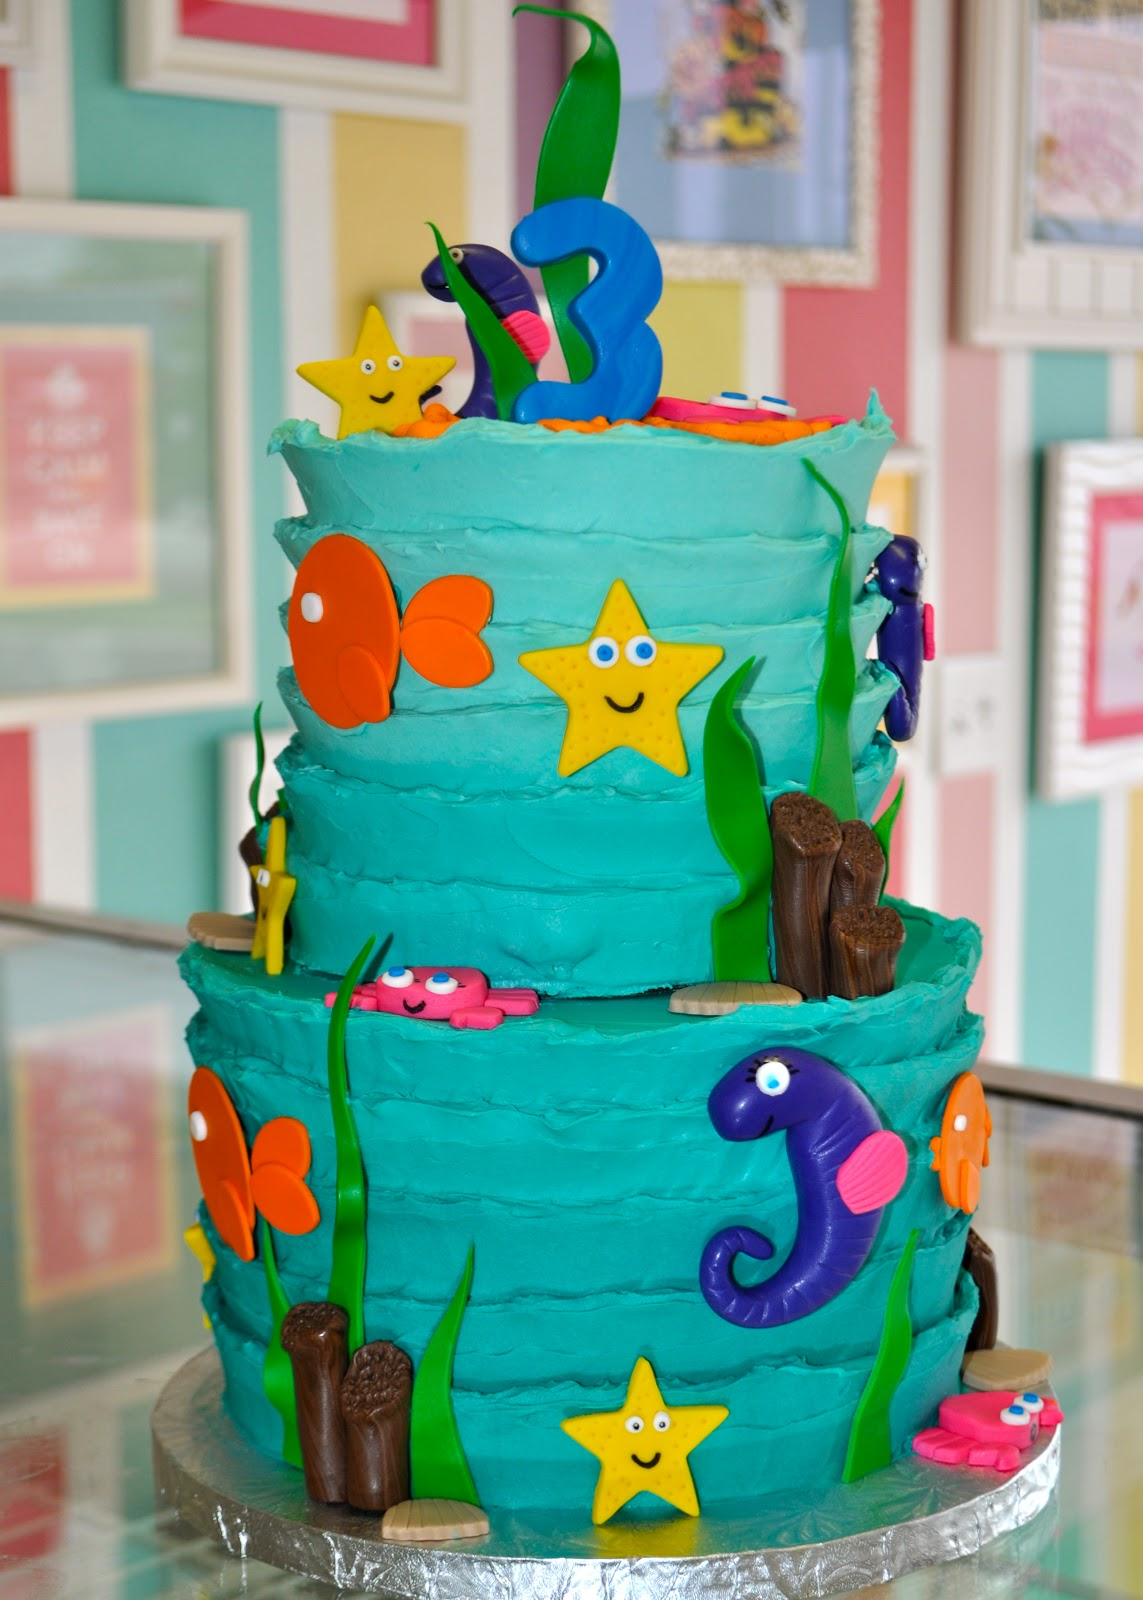 Coolest Cupcakes Under The Sea Birthday Cake